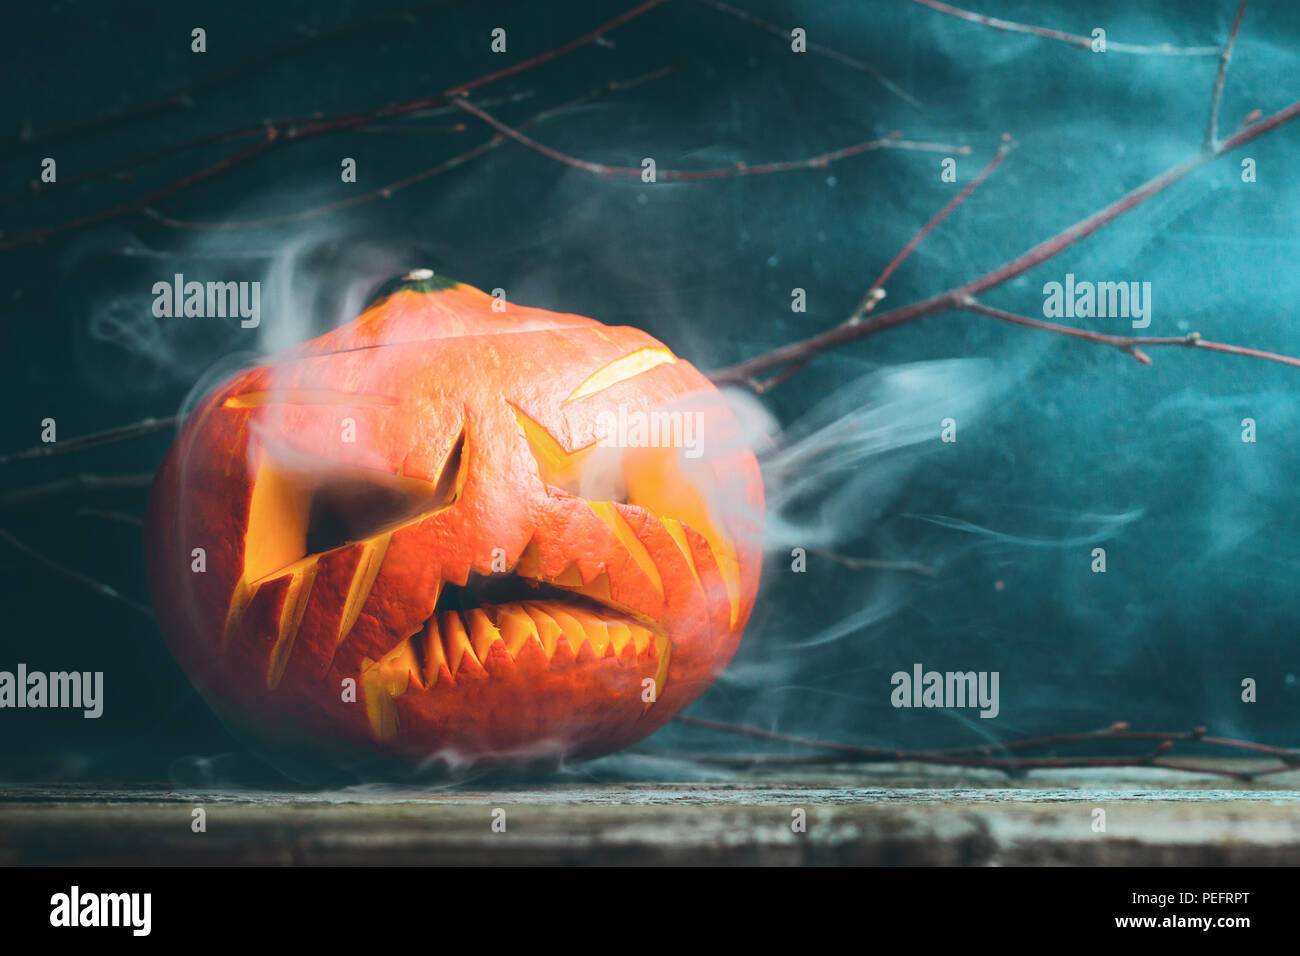 Smoky and scary Jack O Lantern head pumpkin still life. The concept of Halloween. Place for text. Stock Photo